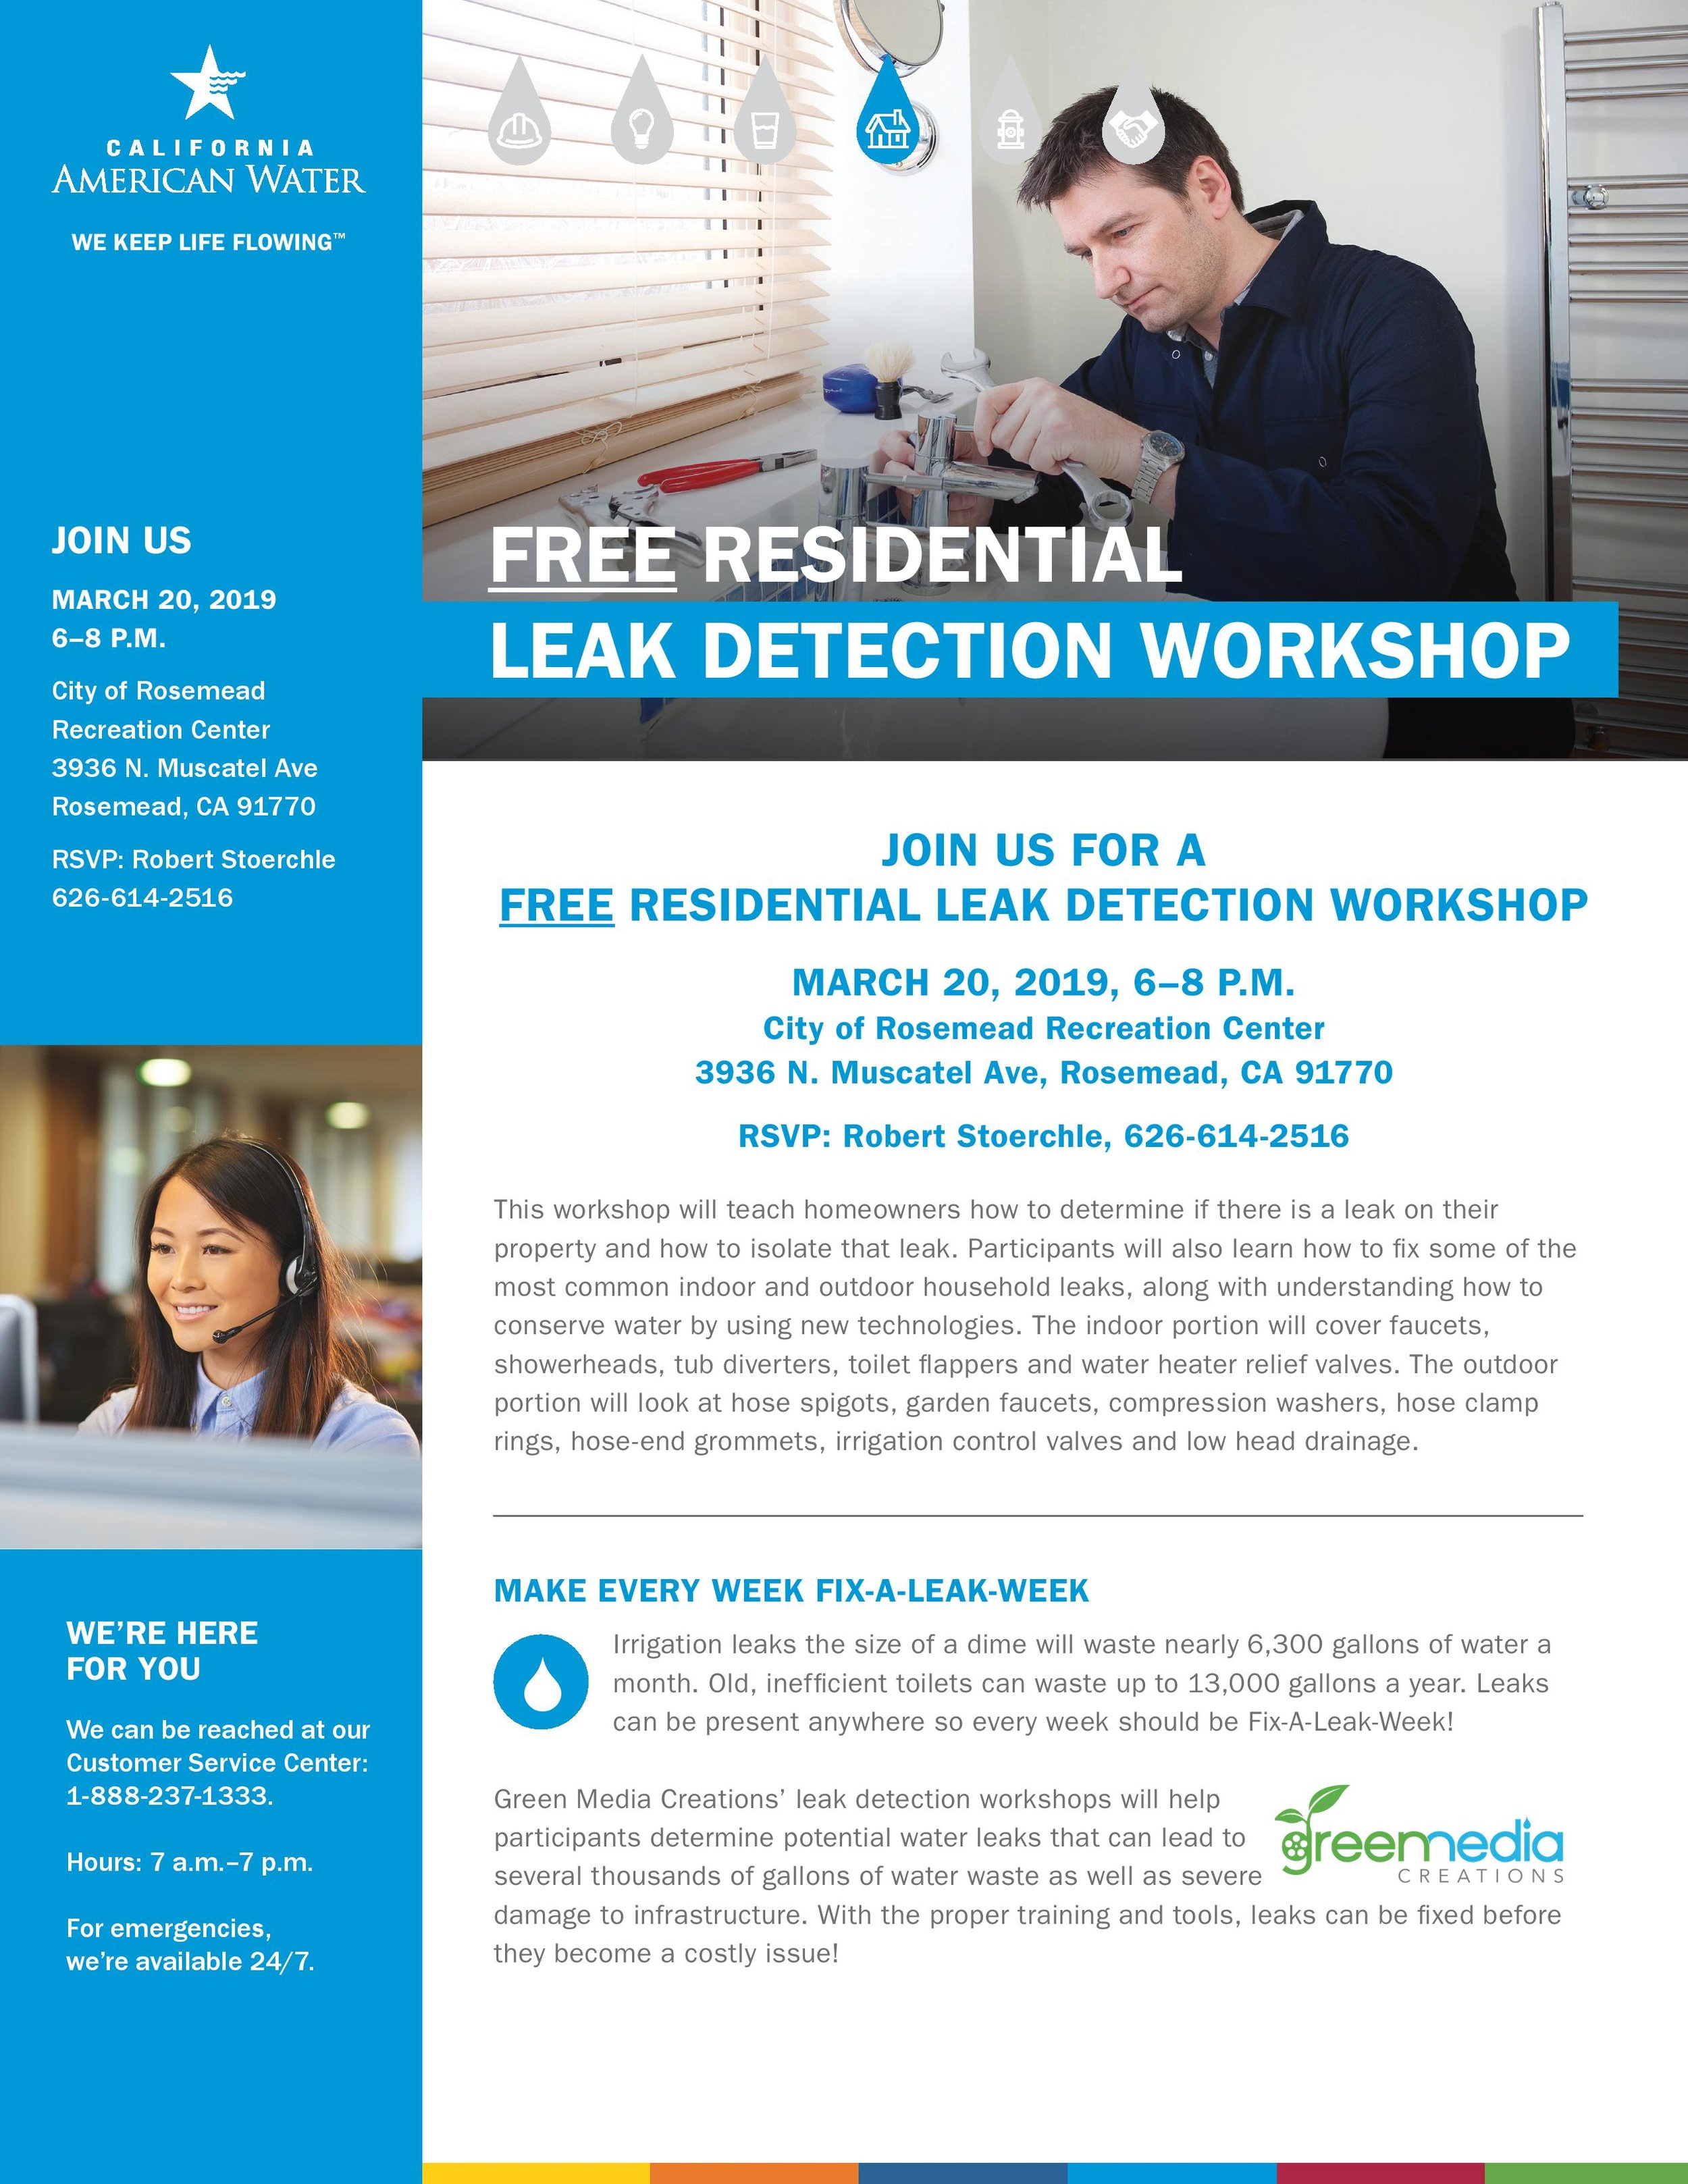 residential leak detection workshop - March 20th, 2019